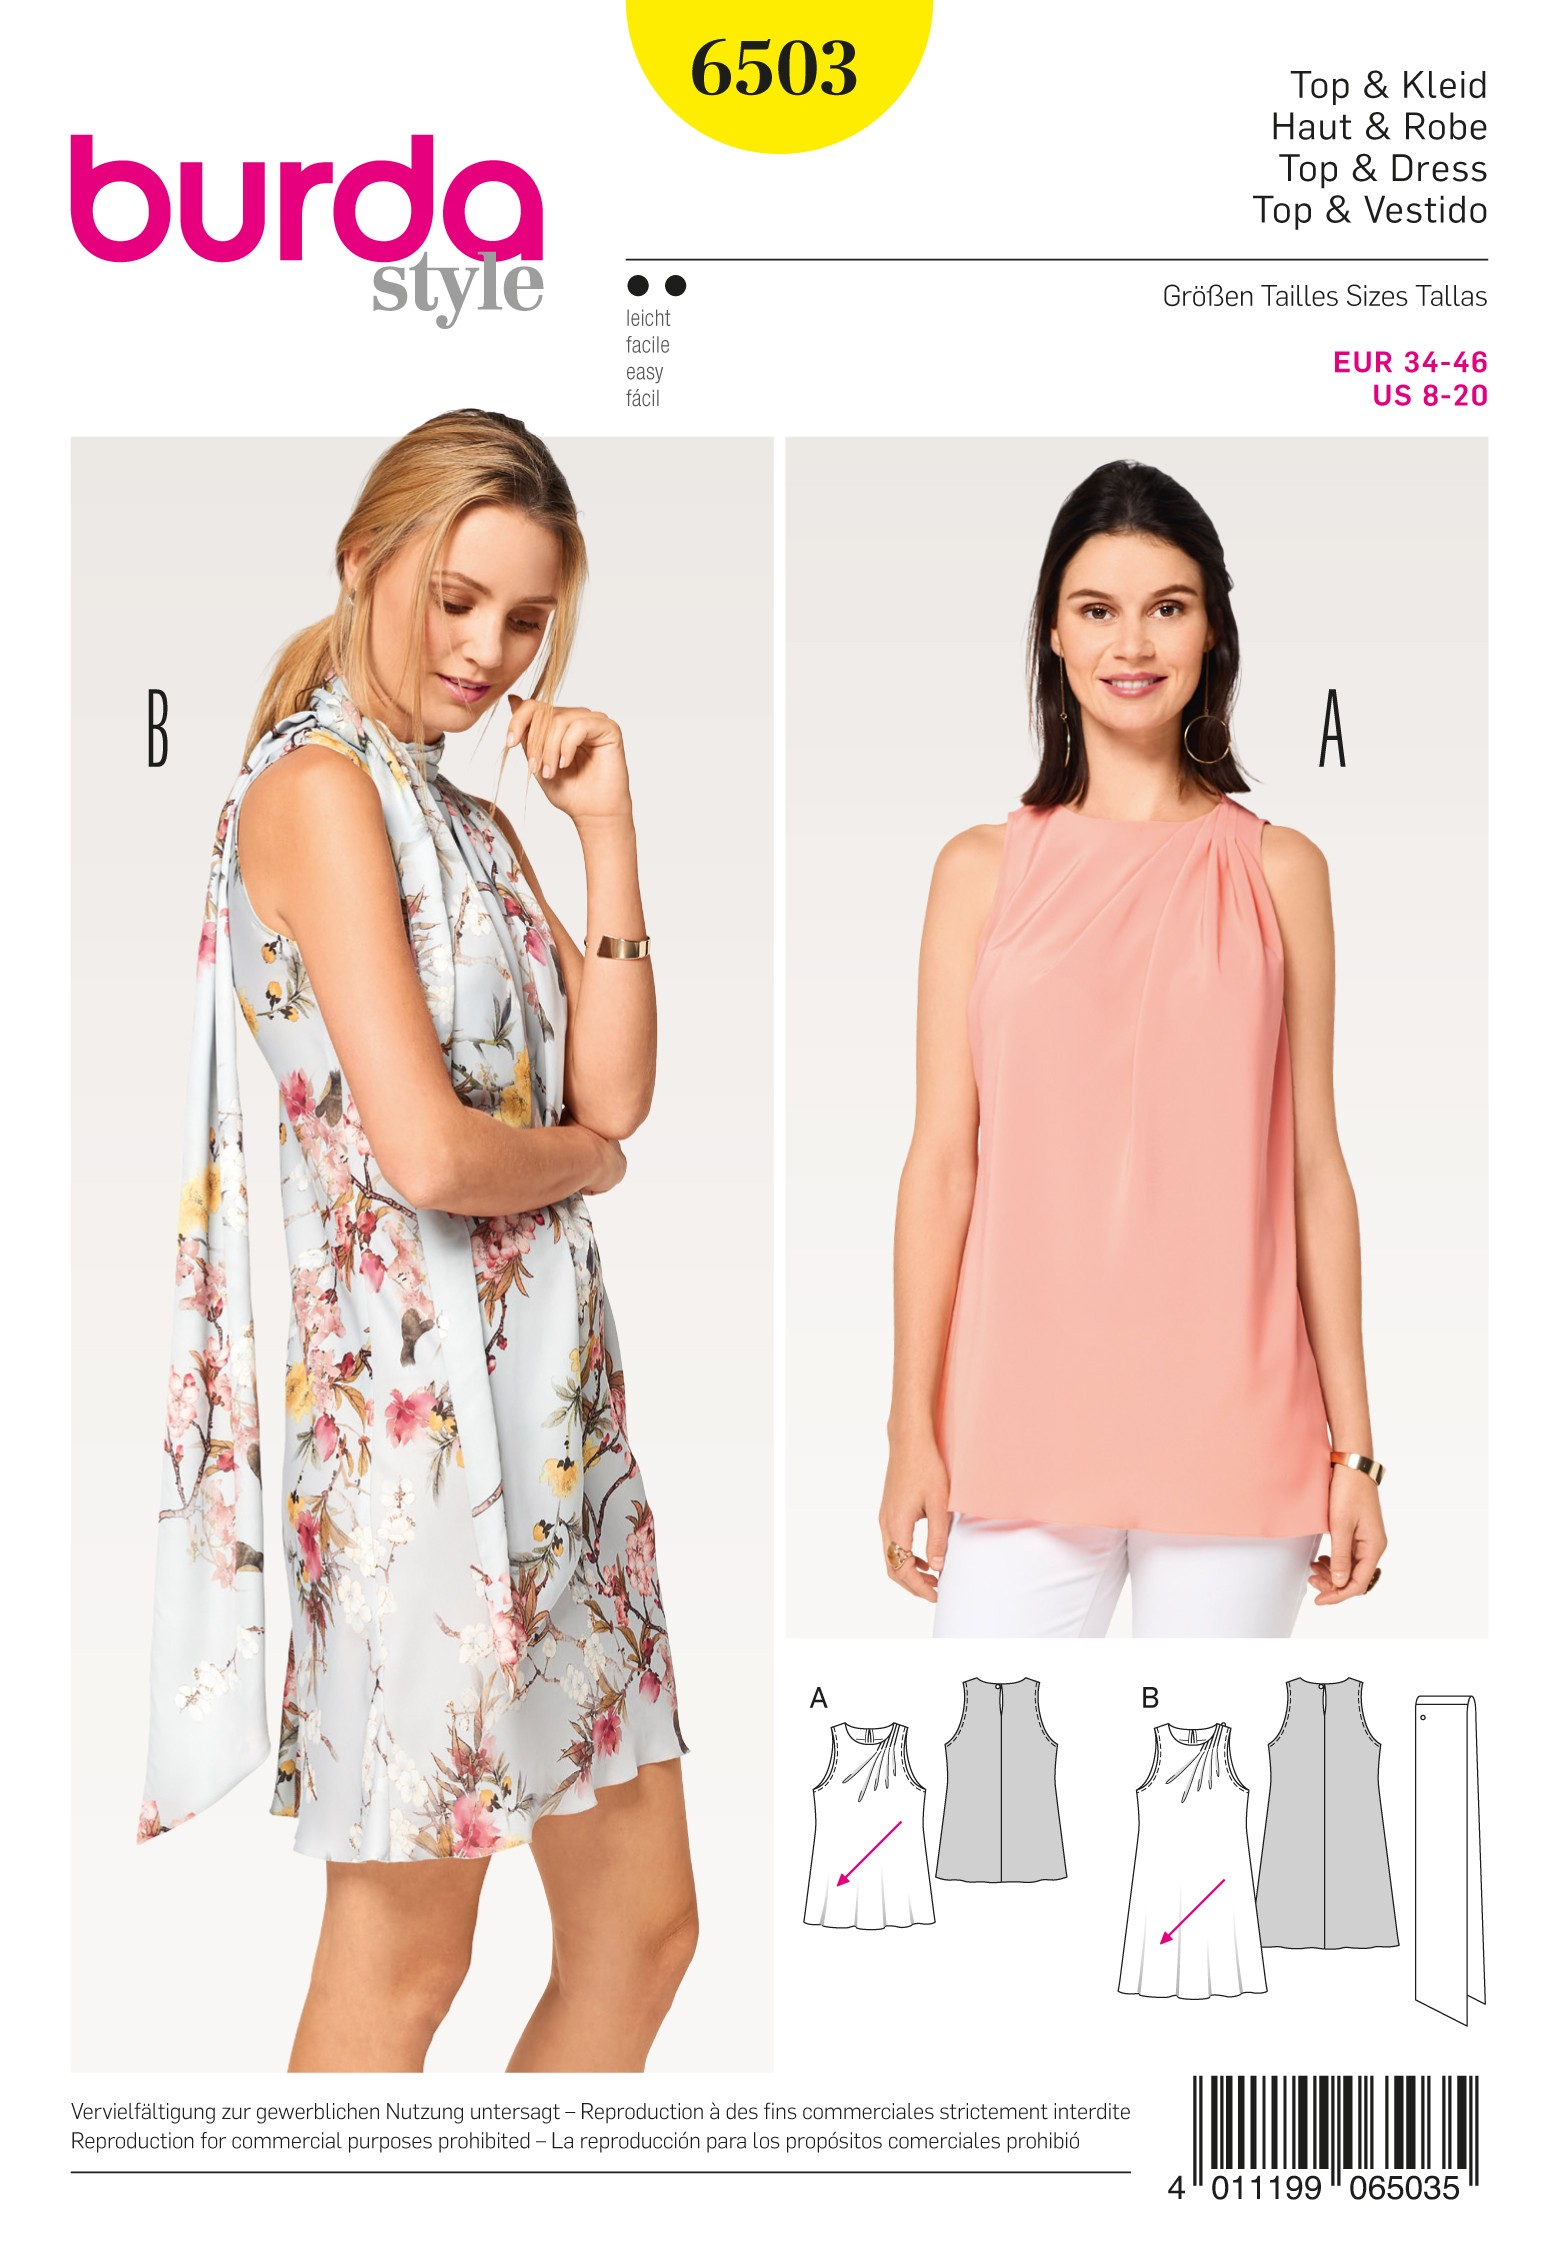 Sewing patterns australia gallery craft decoration ideas burda sewing patterns australia images craft decoration ideas burda sewing patterns australia image collections craft burda jeuxipadfo Choice Image